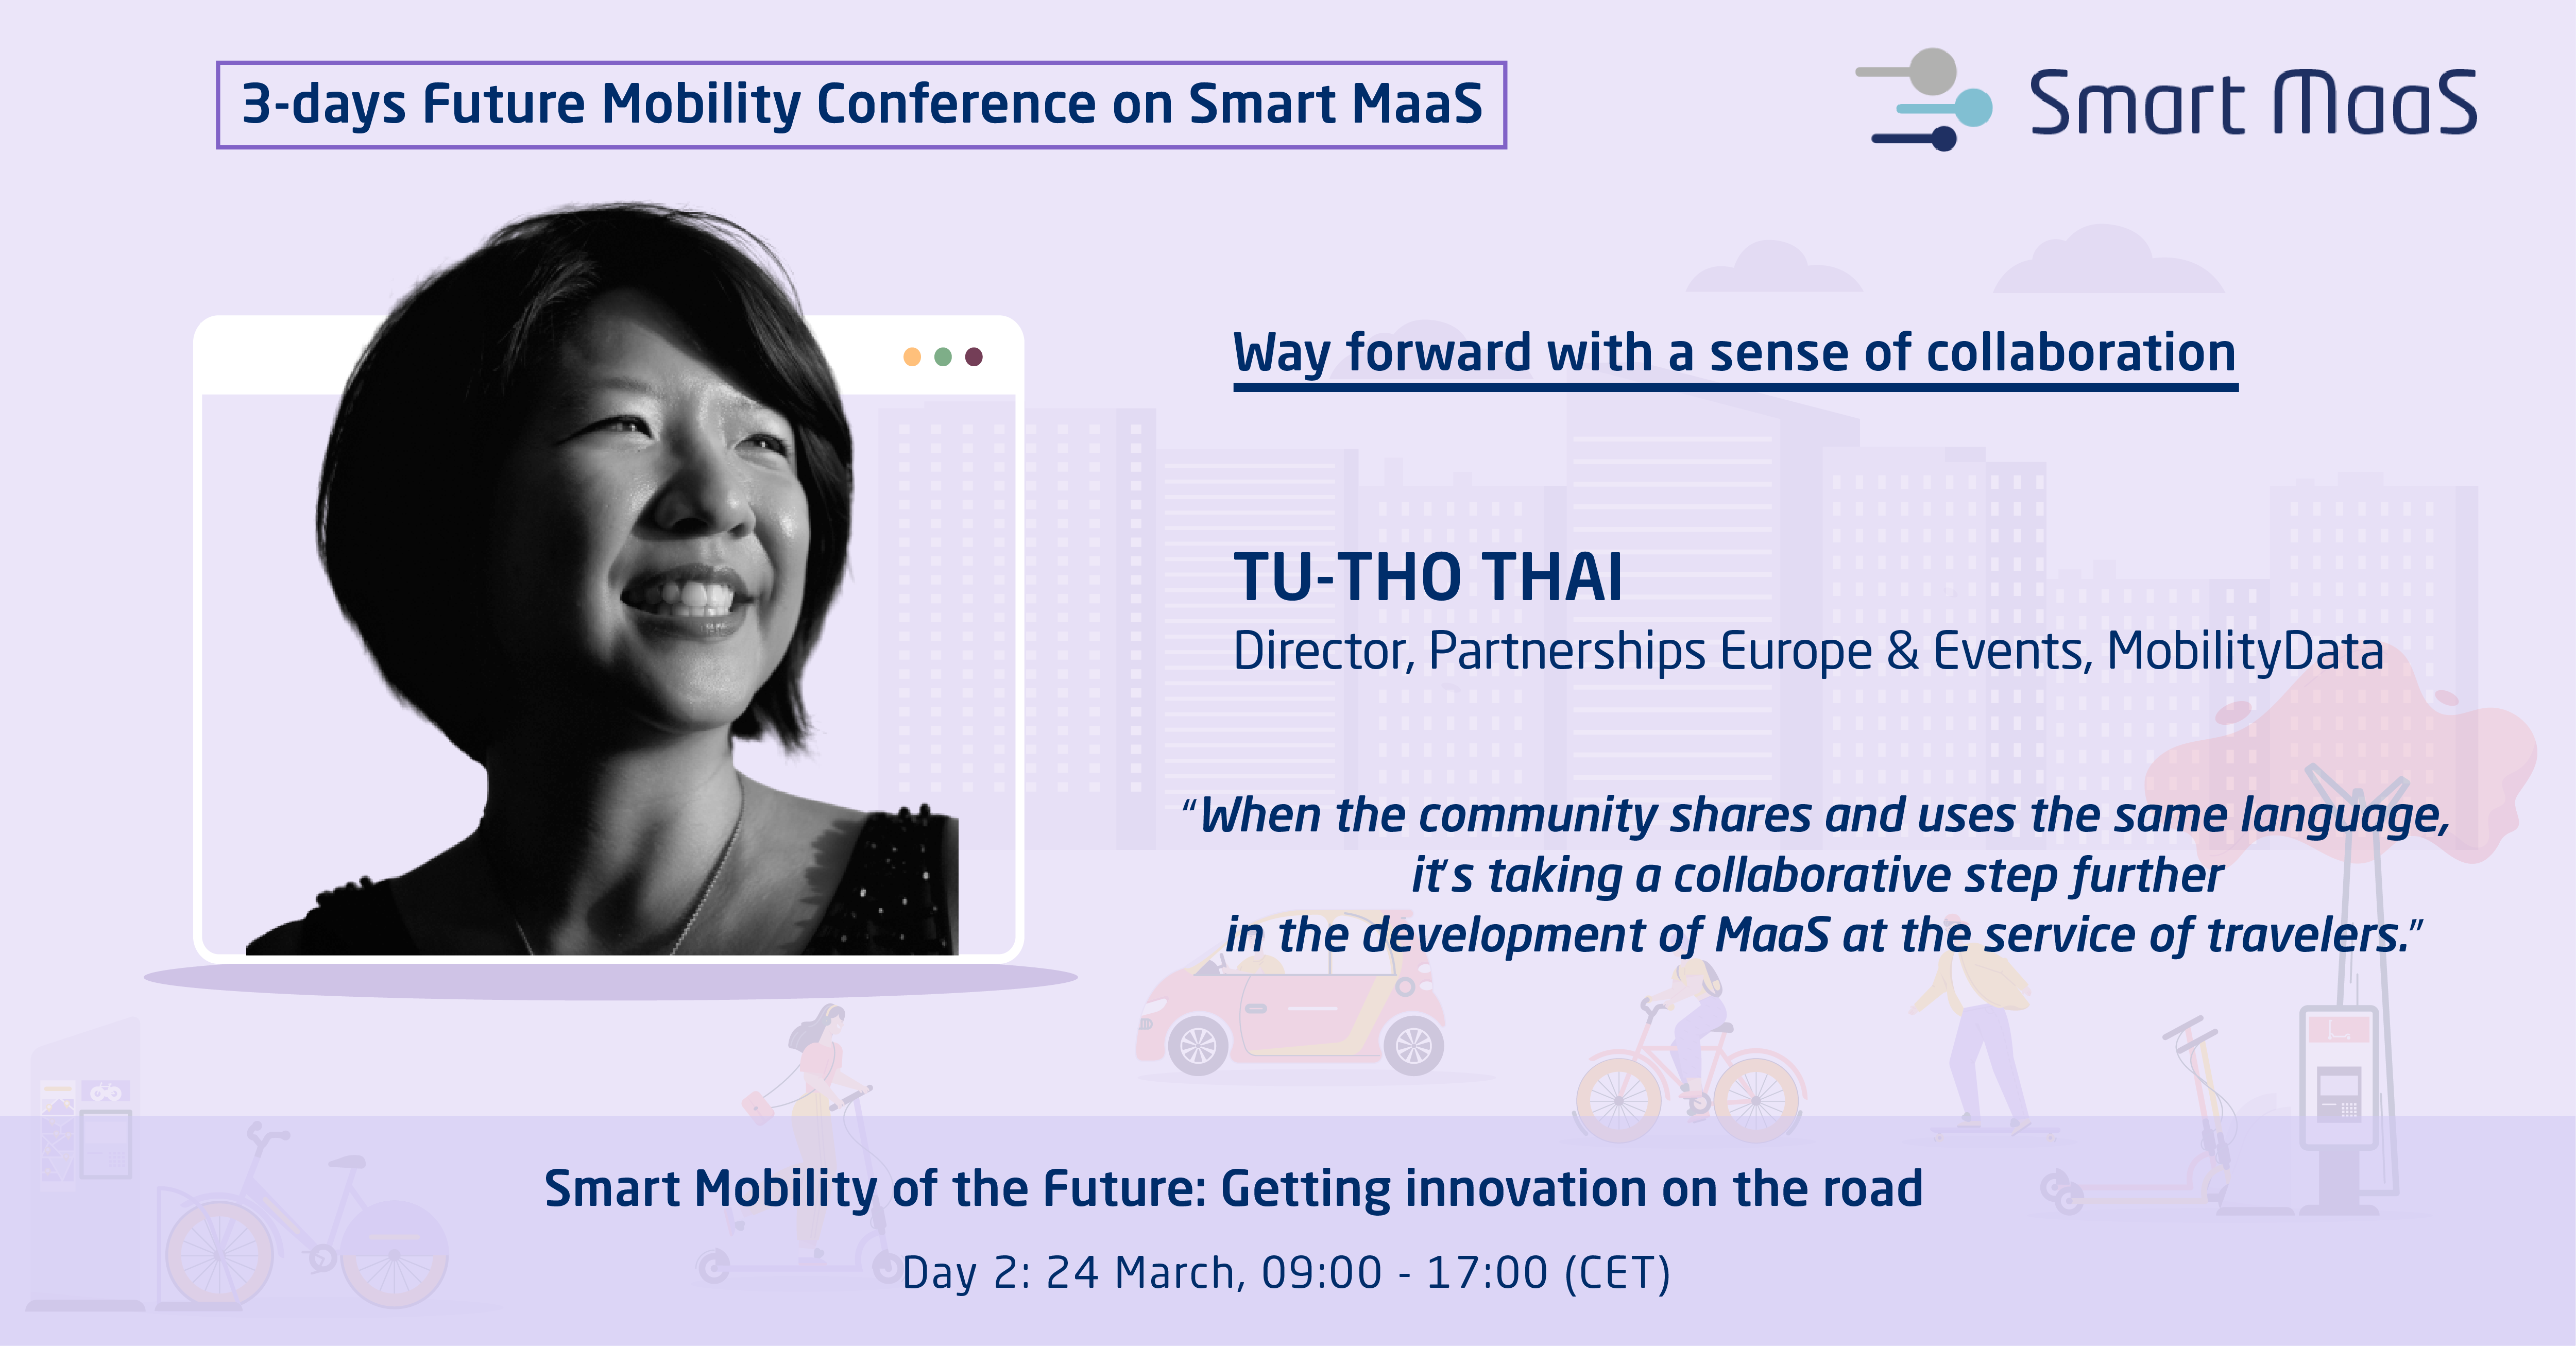 FUTURE Mobility Conference_DAY 2_Tu-Tho Thai-2